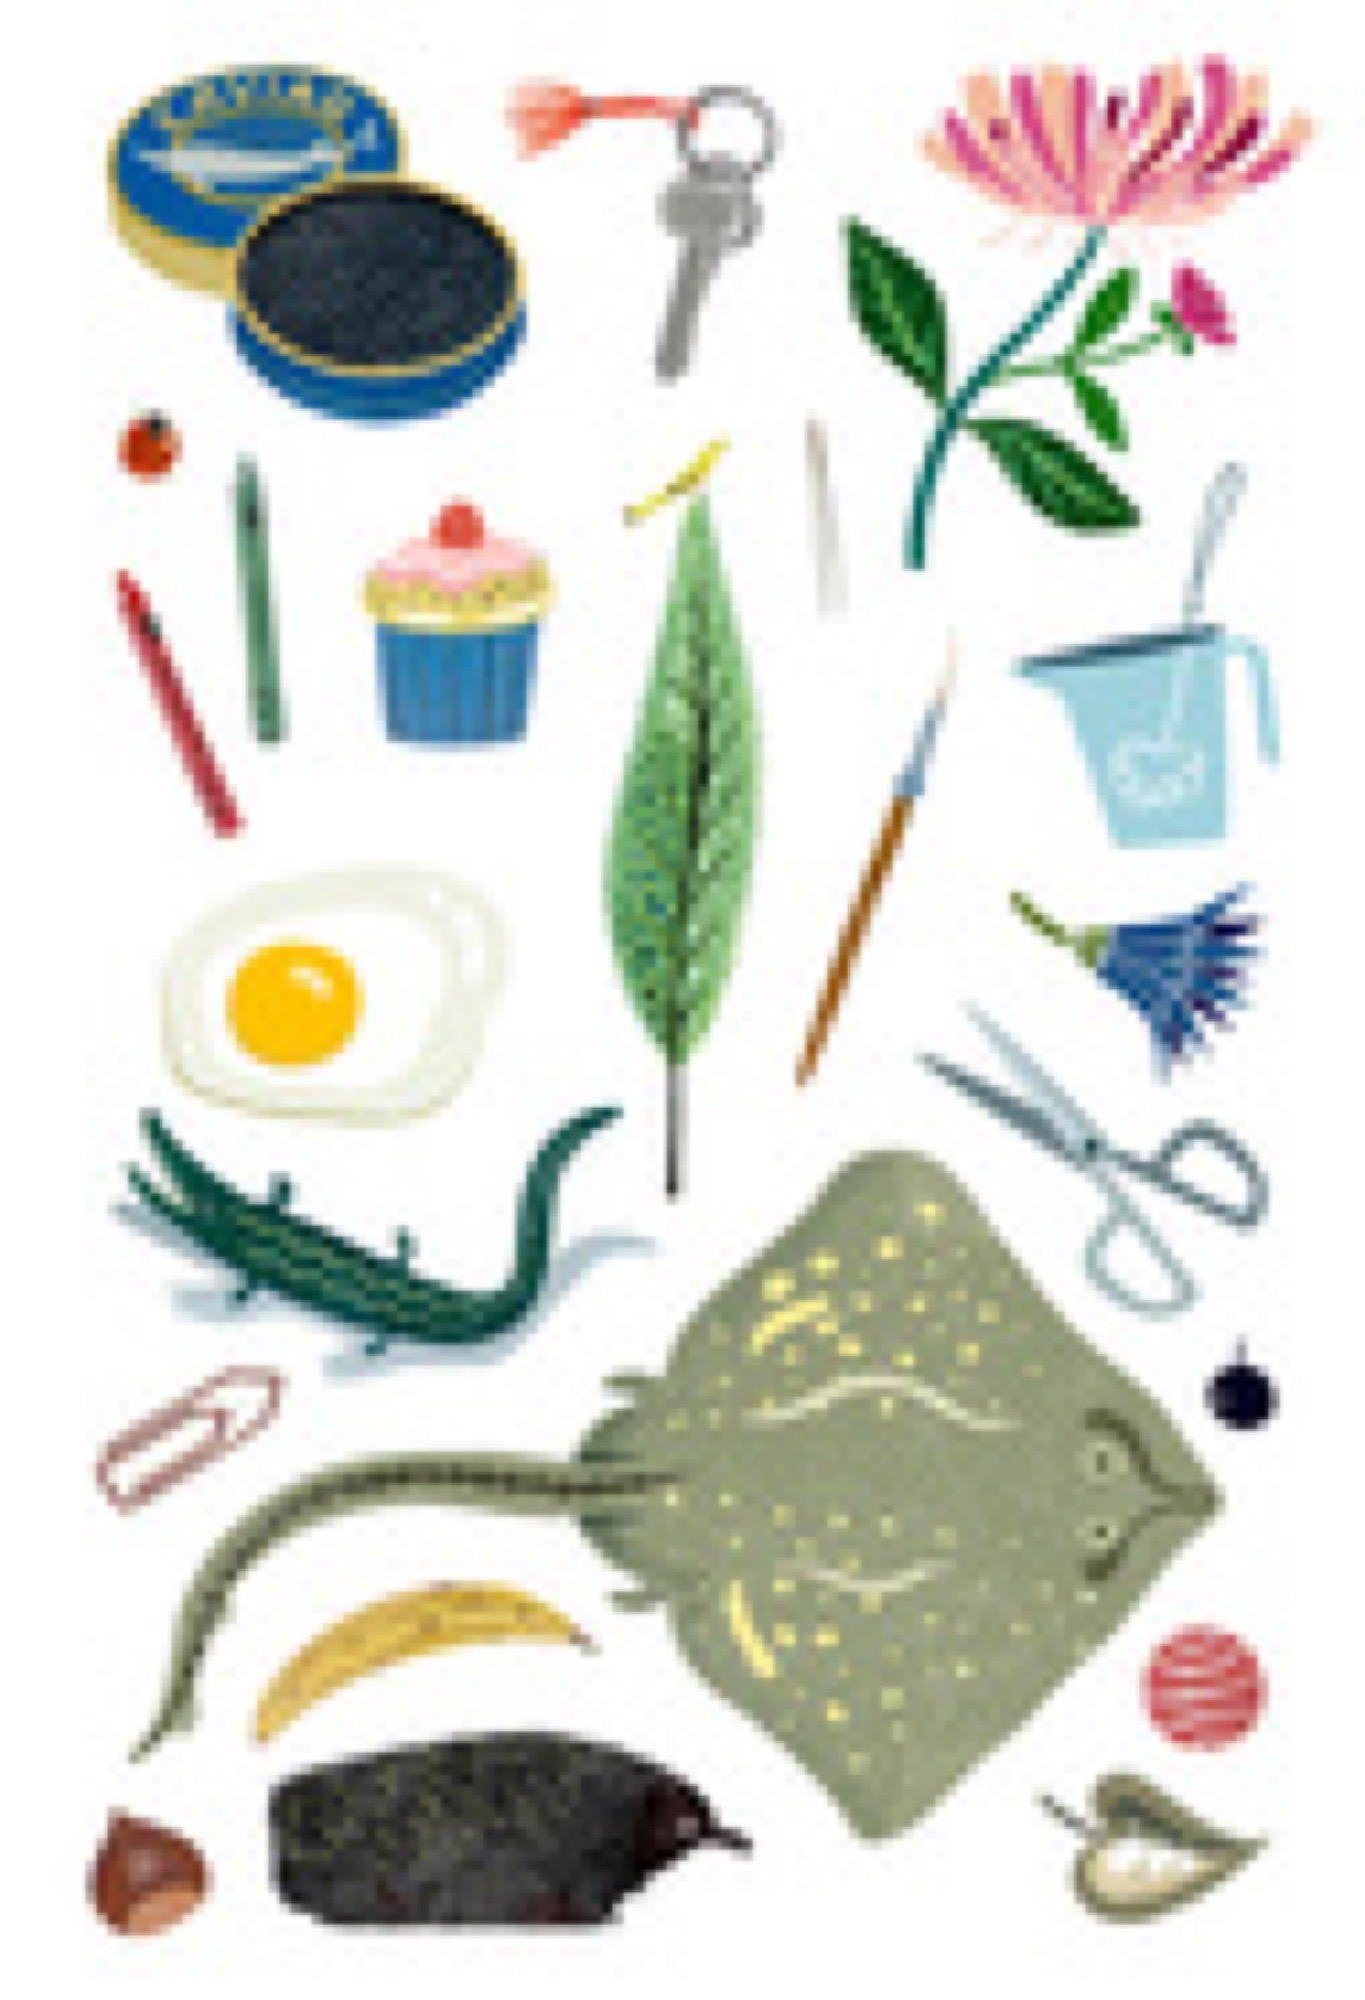 SMALL THINGS. Illustratör Lena Sjöberg